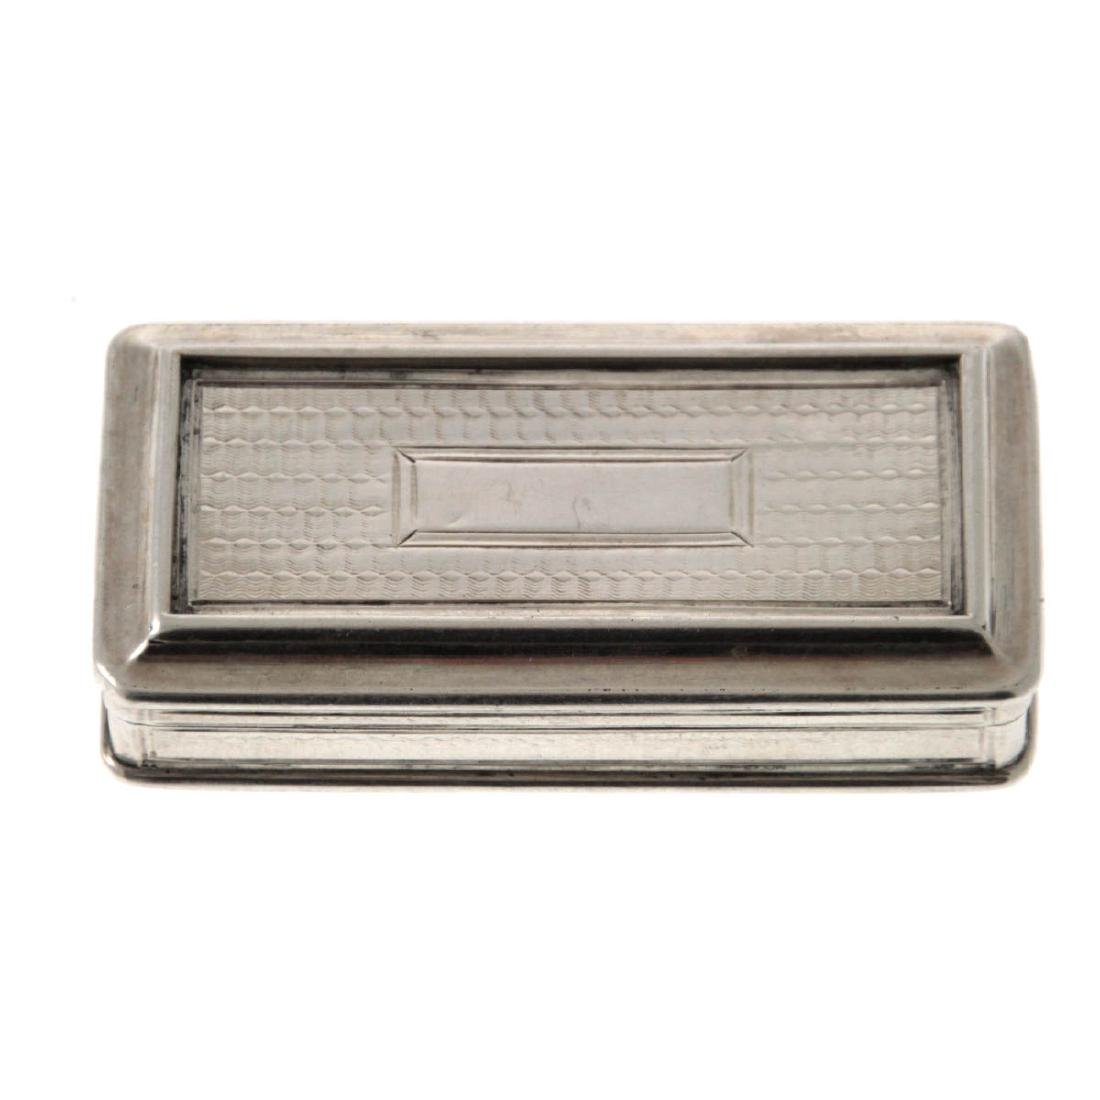 Sterling Silver Tobacco Snuff Box, Taylor & Perry,